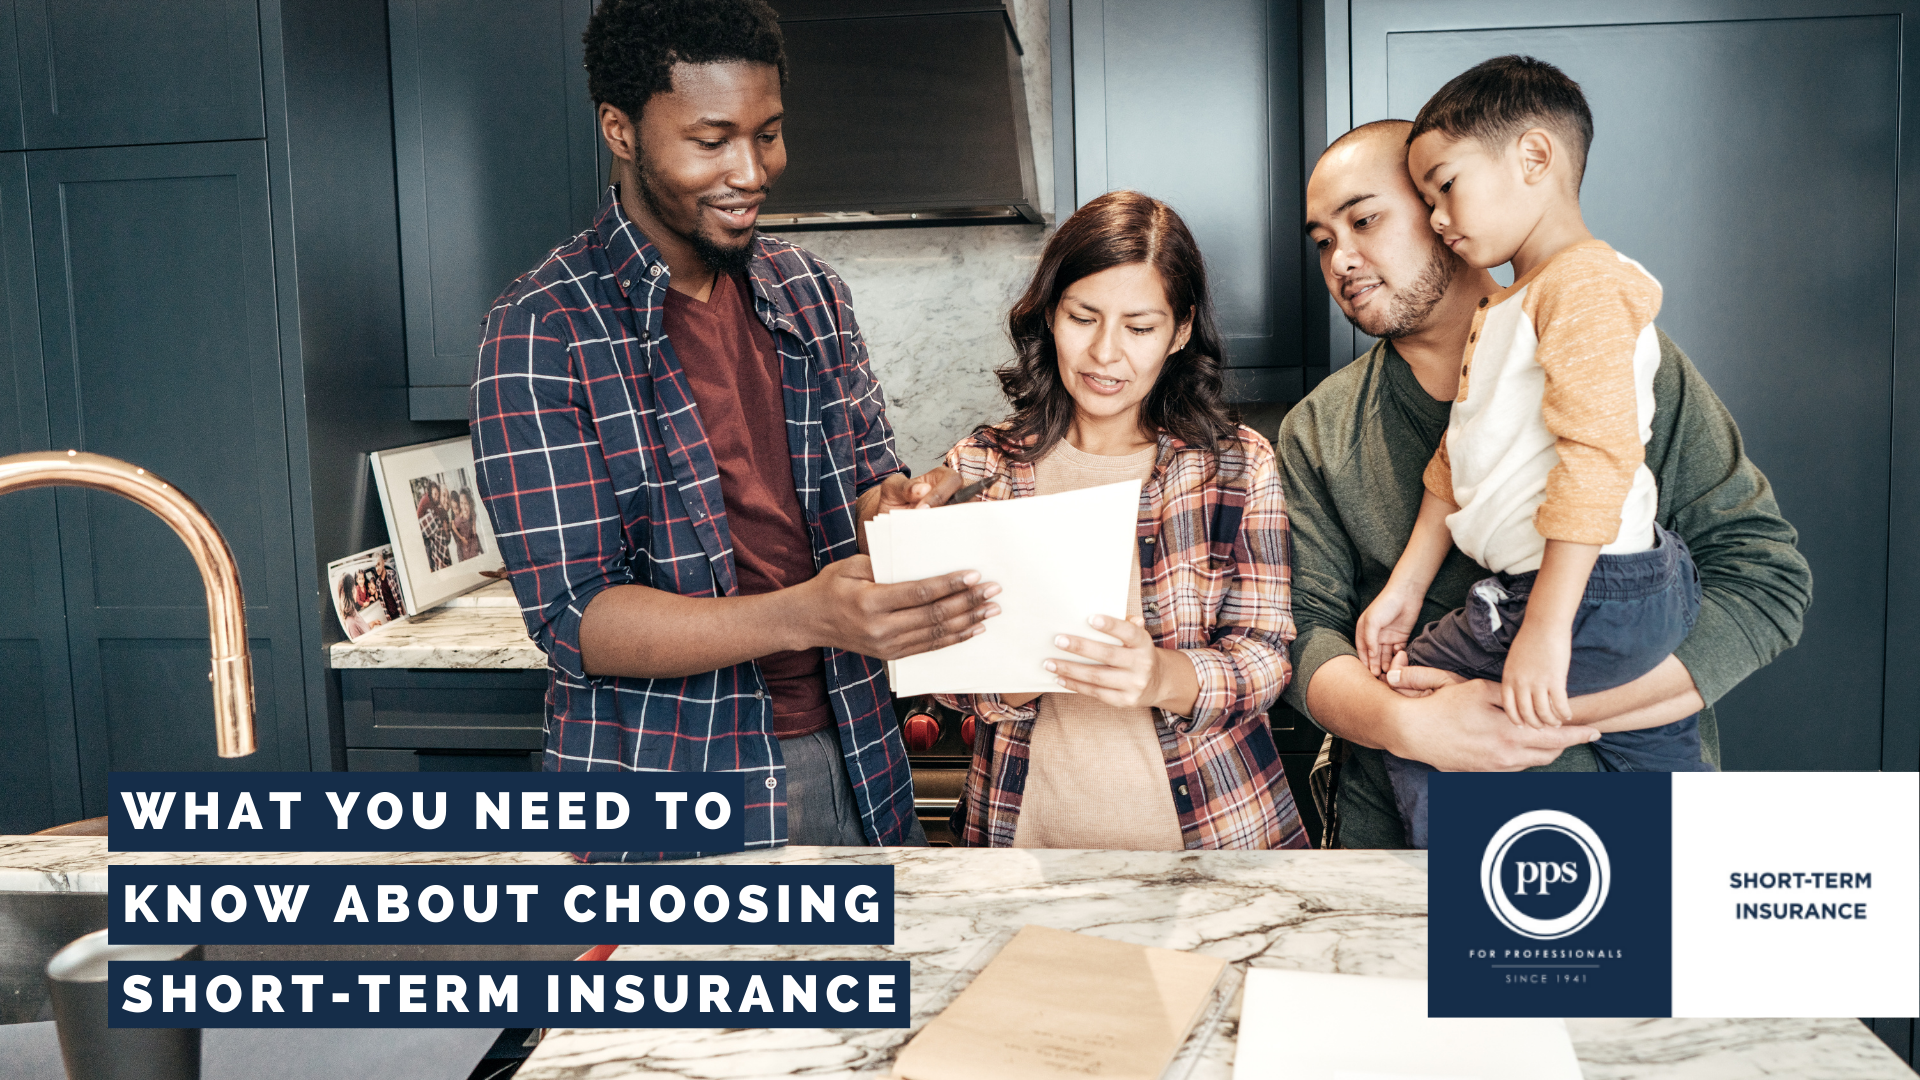 What you need to know about choosing short-term insurance